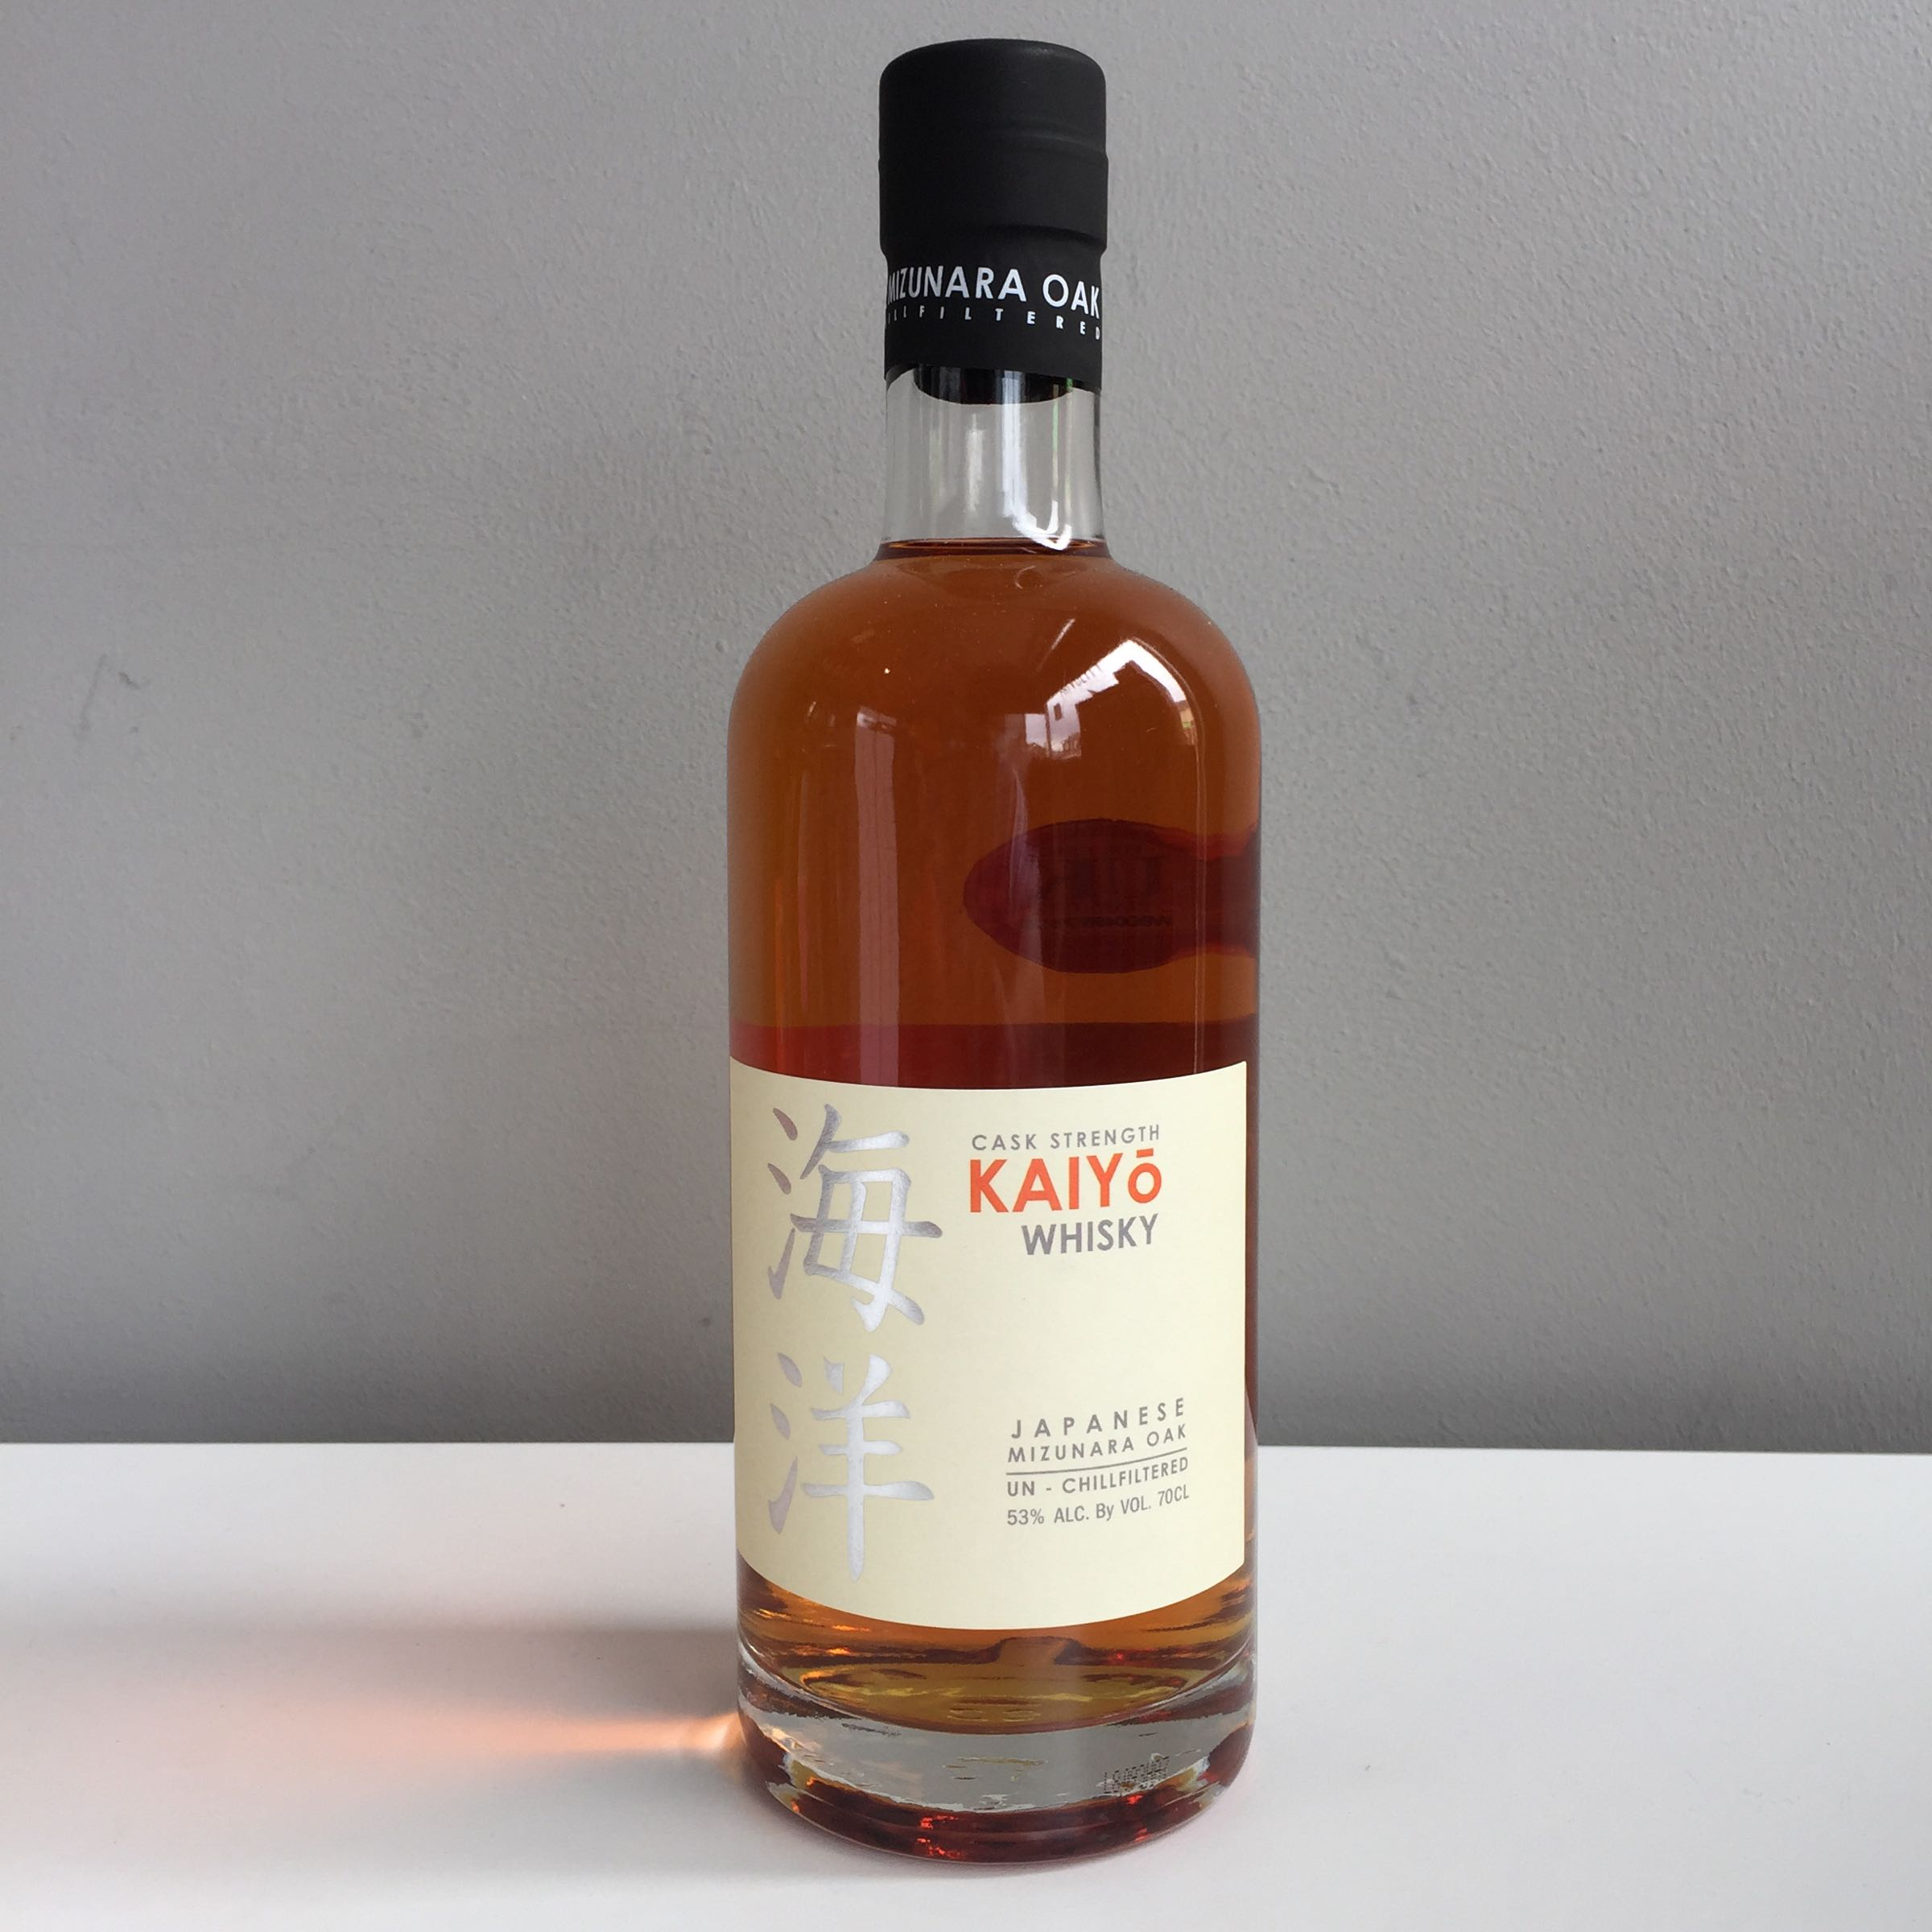 Kaiyo Whisky, Japanese, 70cl 53% ABV